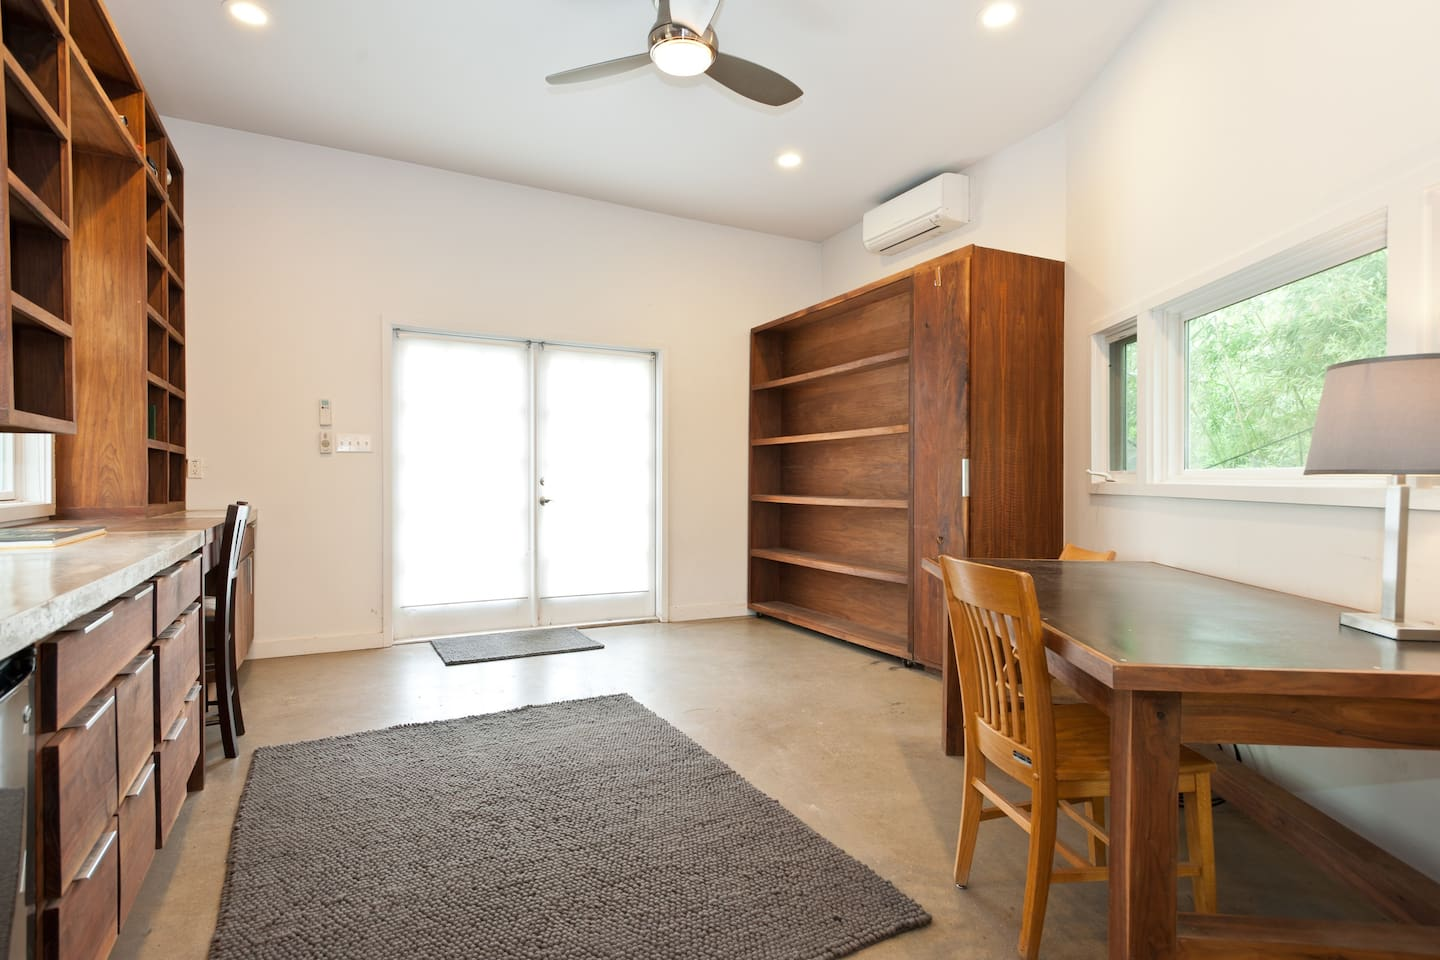 What's that big shelf in the back, you ask? Why, it's a fold-down Murphy bed. Scroll through more photos to see it in action.